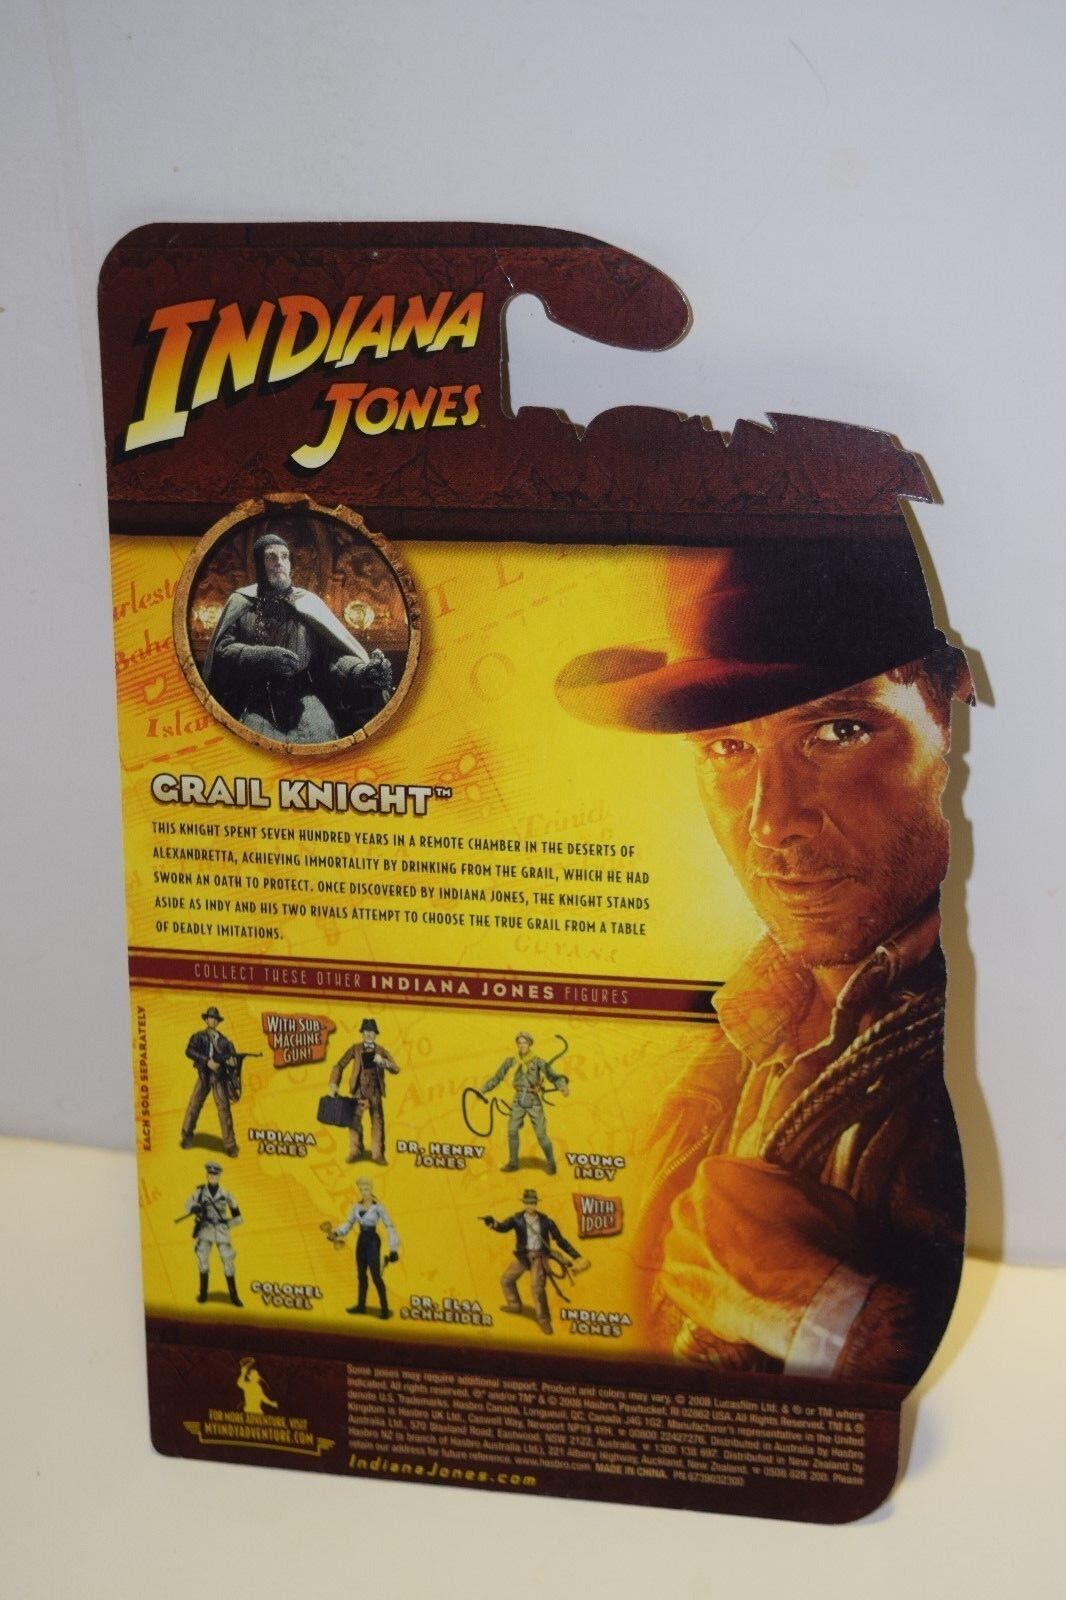 Grail  Knight - Indiana Jones -2008 prossootype proof autod for 3 3 4  cifras  vendite online